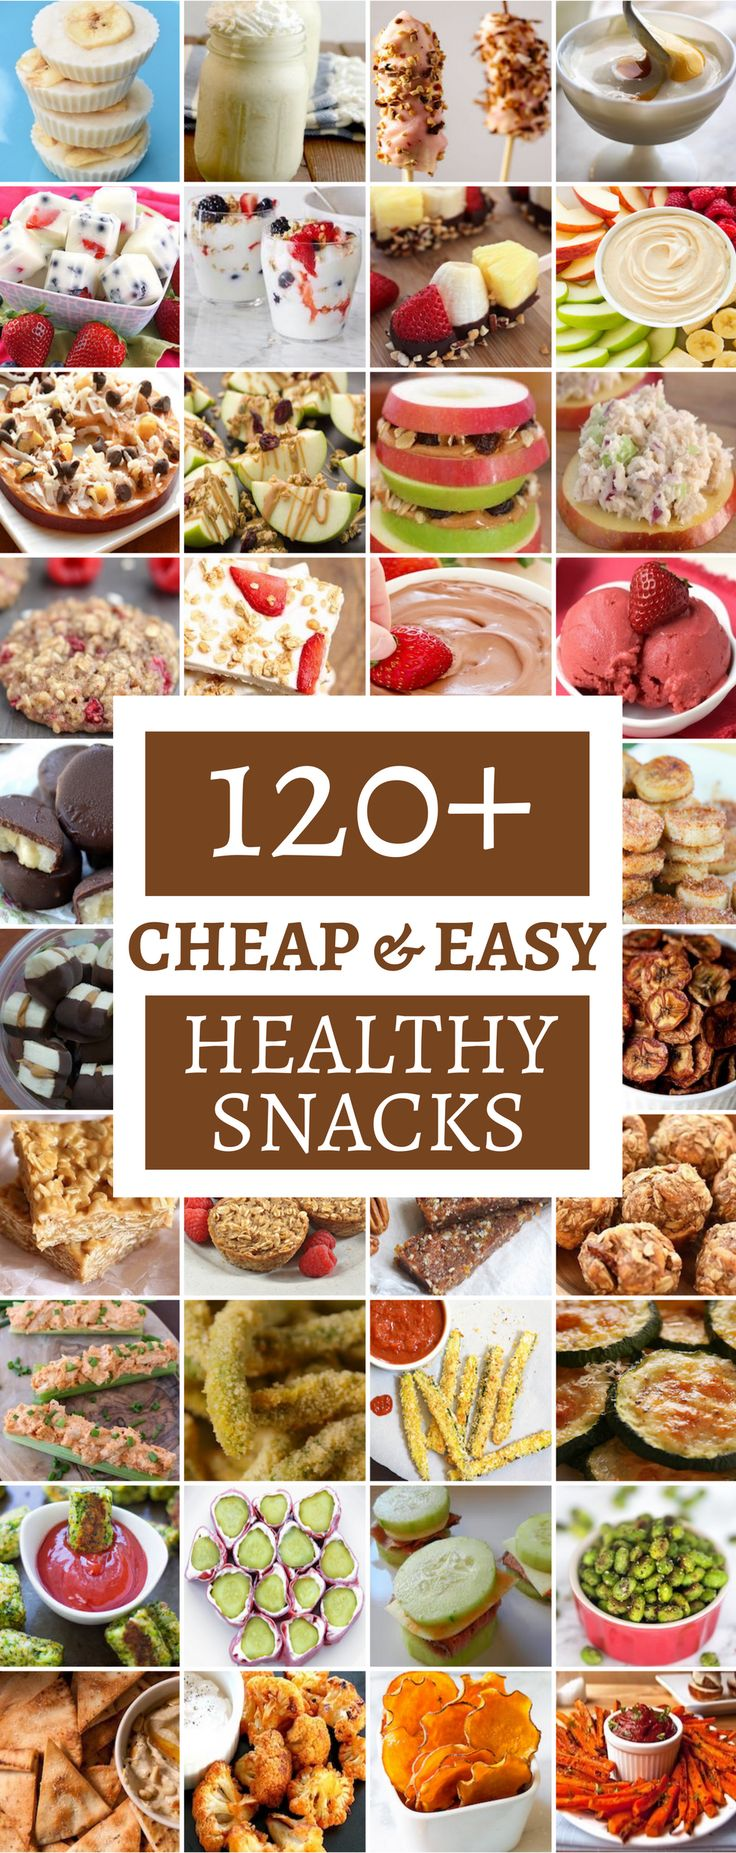 120 Cheap & Healthy Snacks